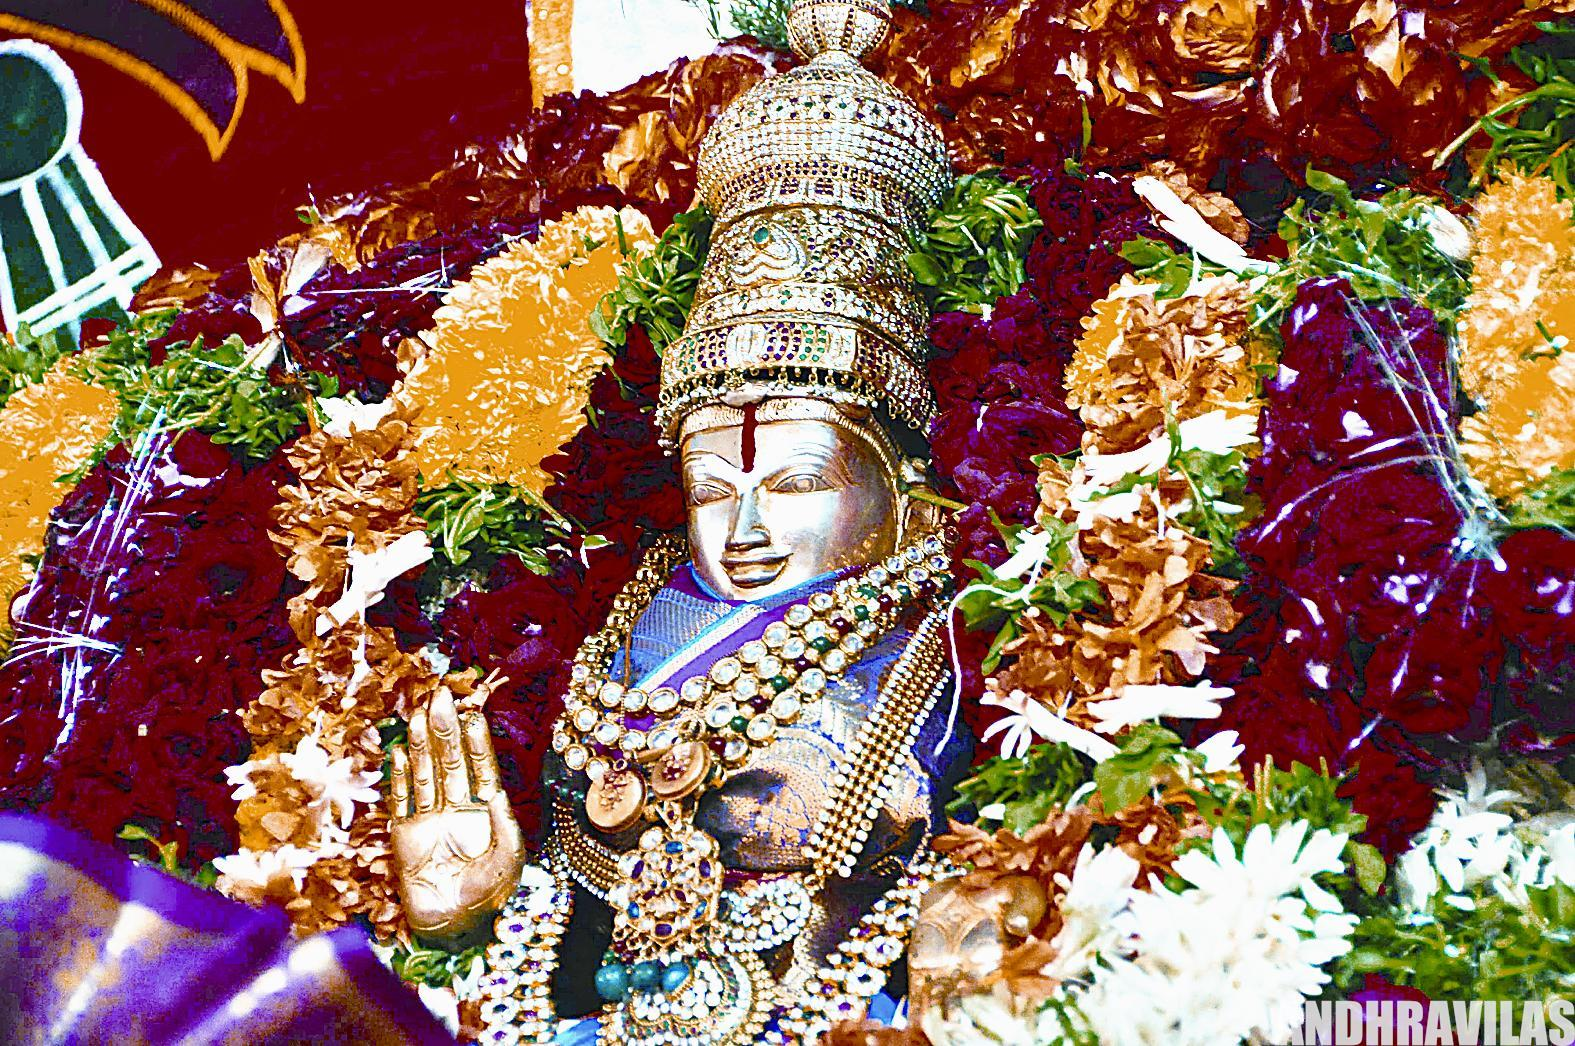 Varalakshmi Vratham Special Pooja At Ashta Lakshmi Temple In